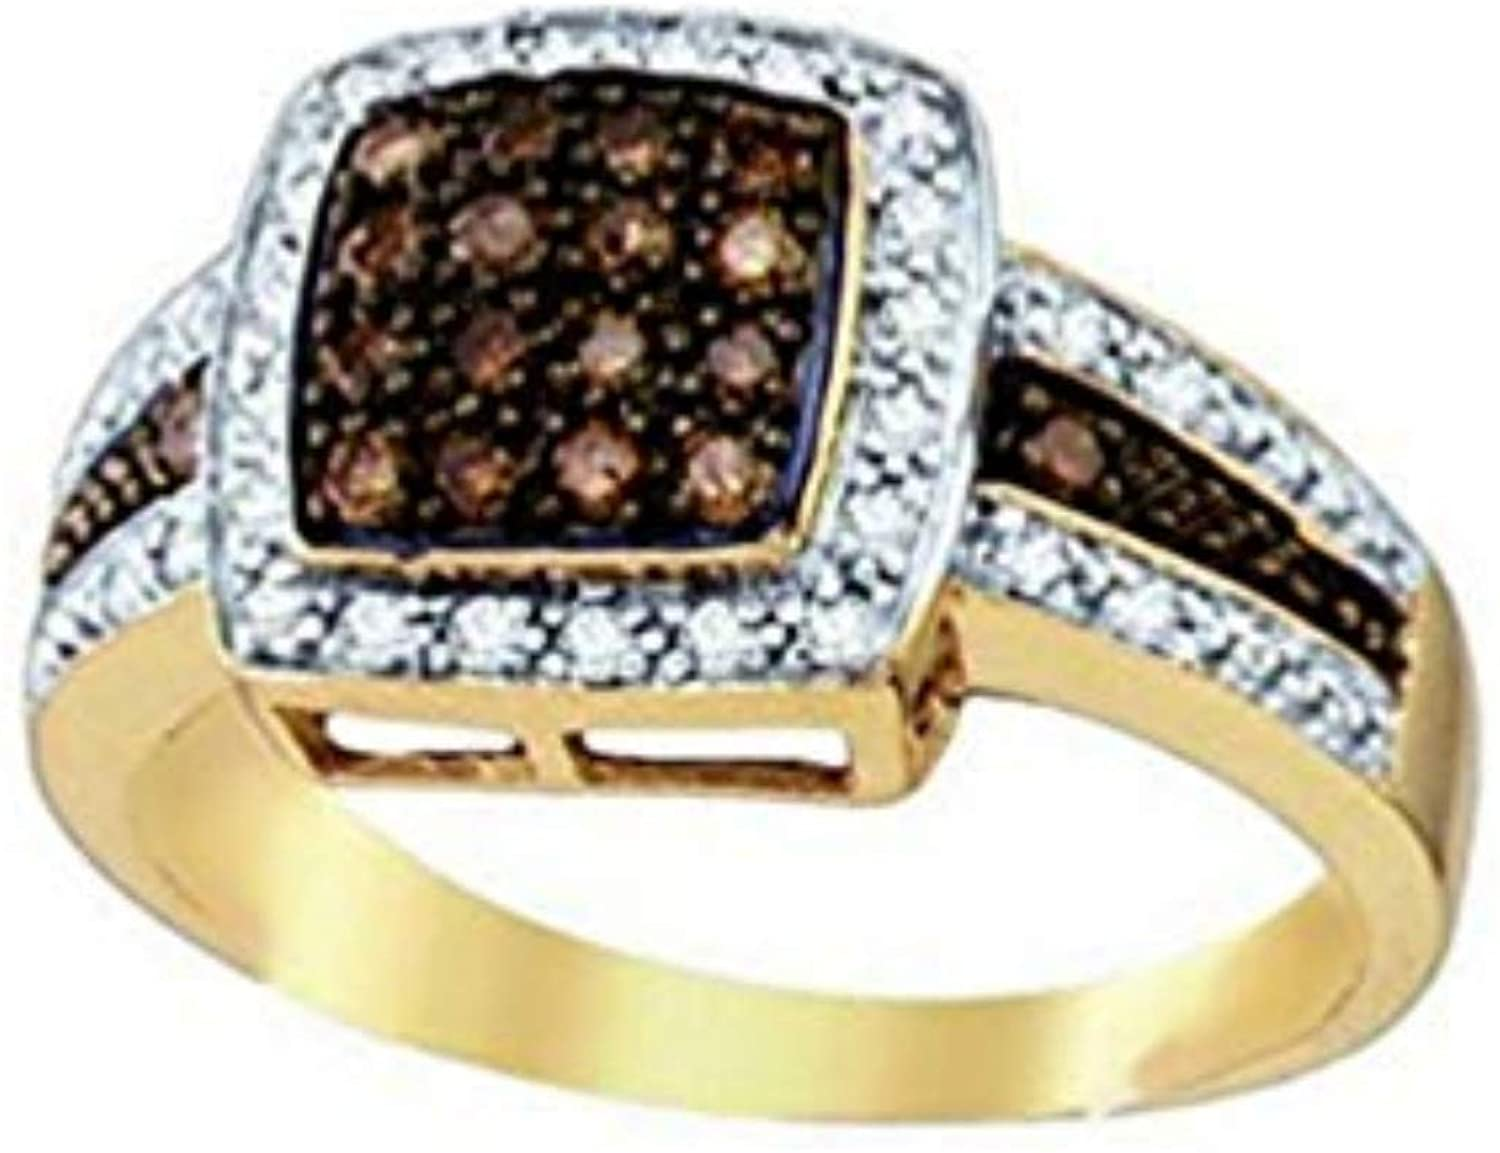 Brandy Diamond 14K Yellow Gold Chocolate Brown Princess Queen Bee Cocktail Ring 1/2 Ctw.